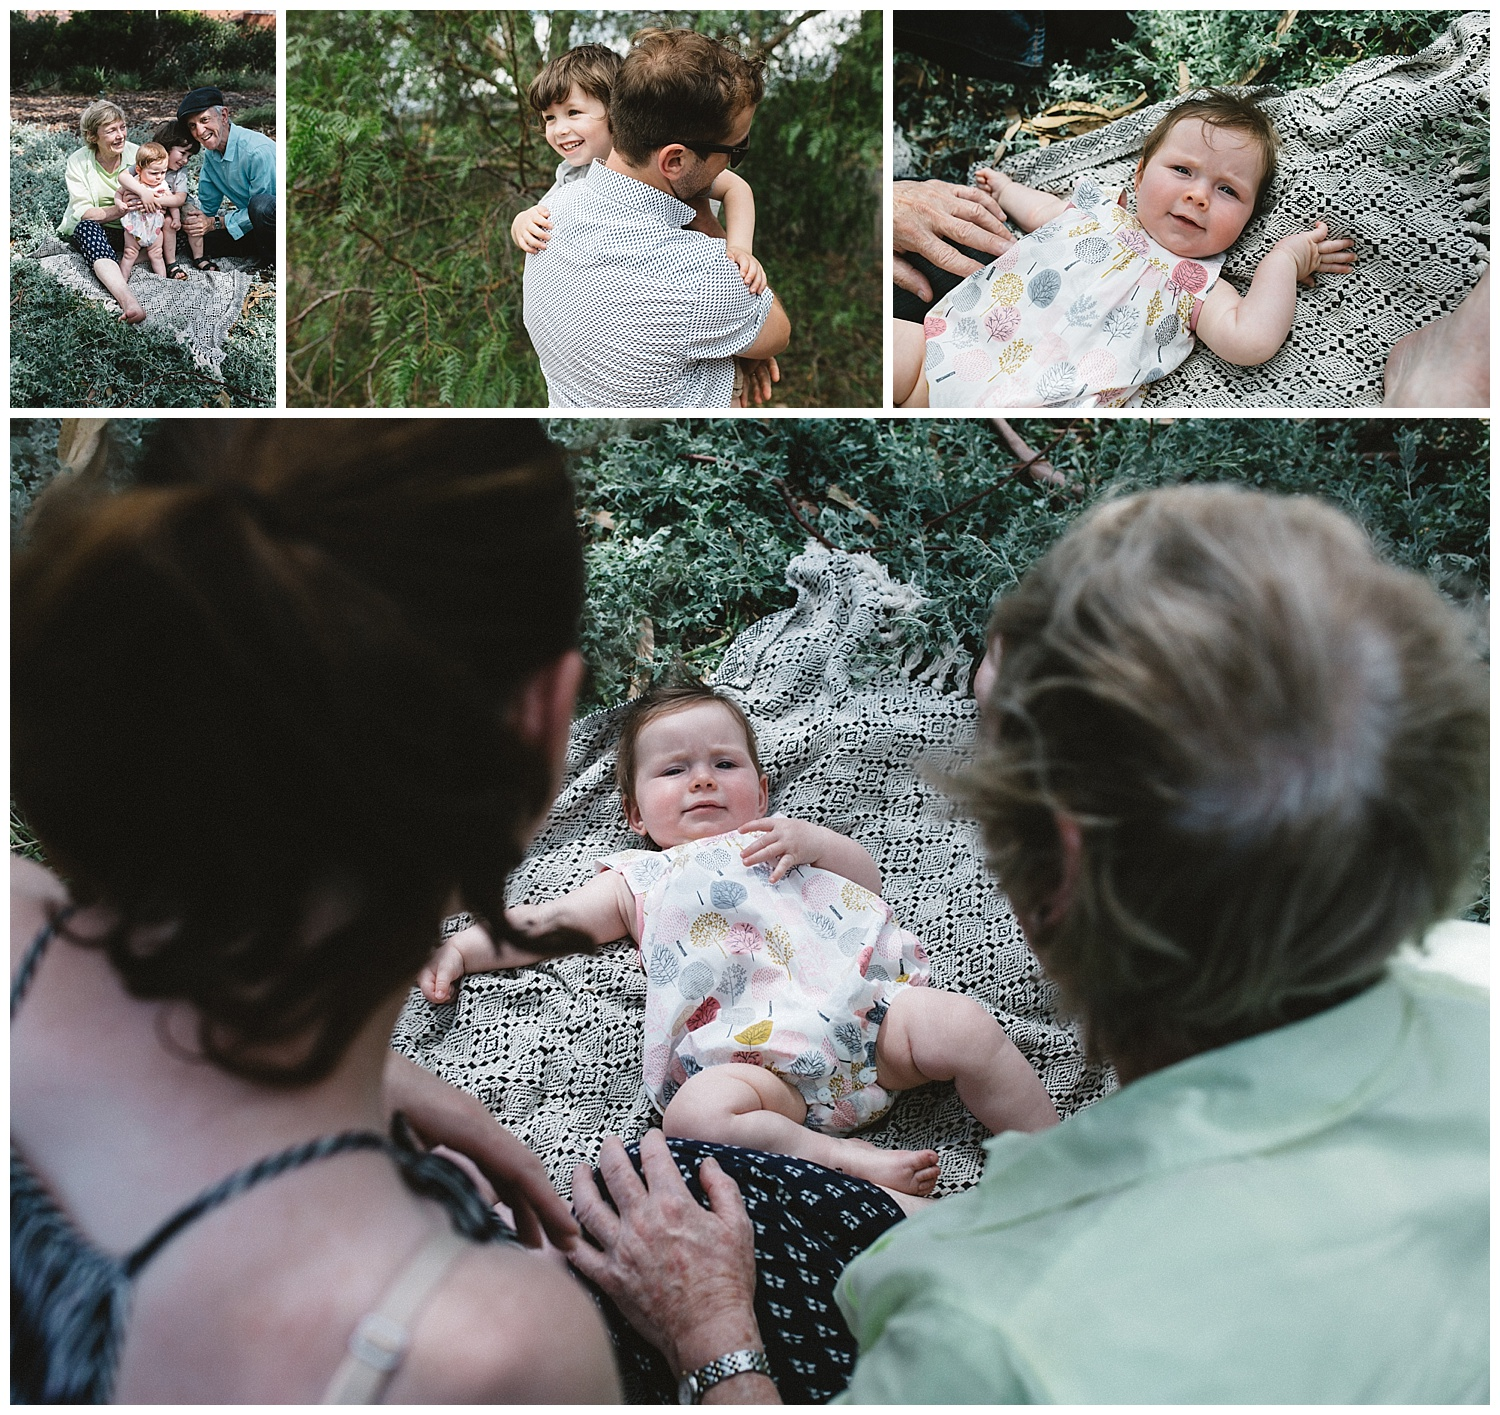 Baby photography in melbourne and outdoors family portriats